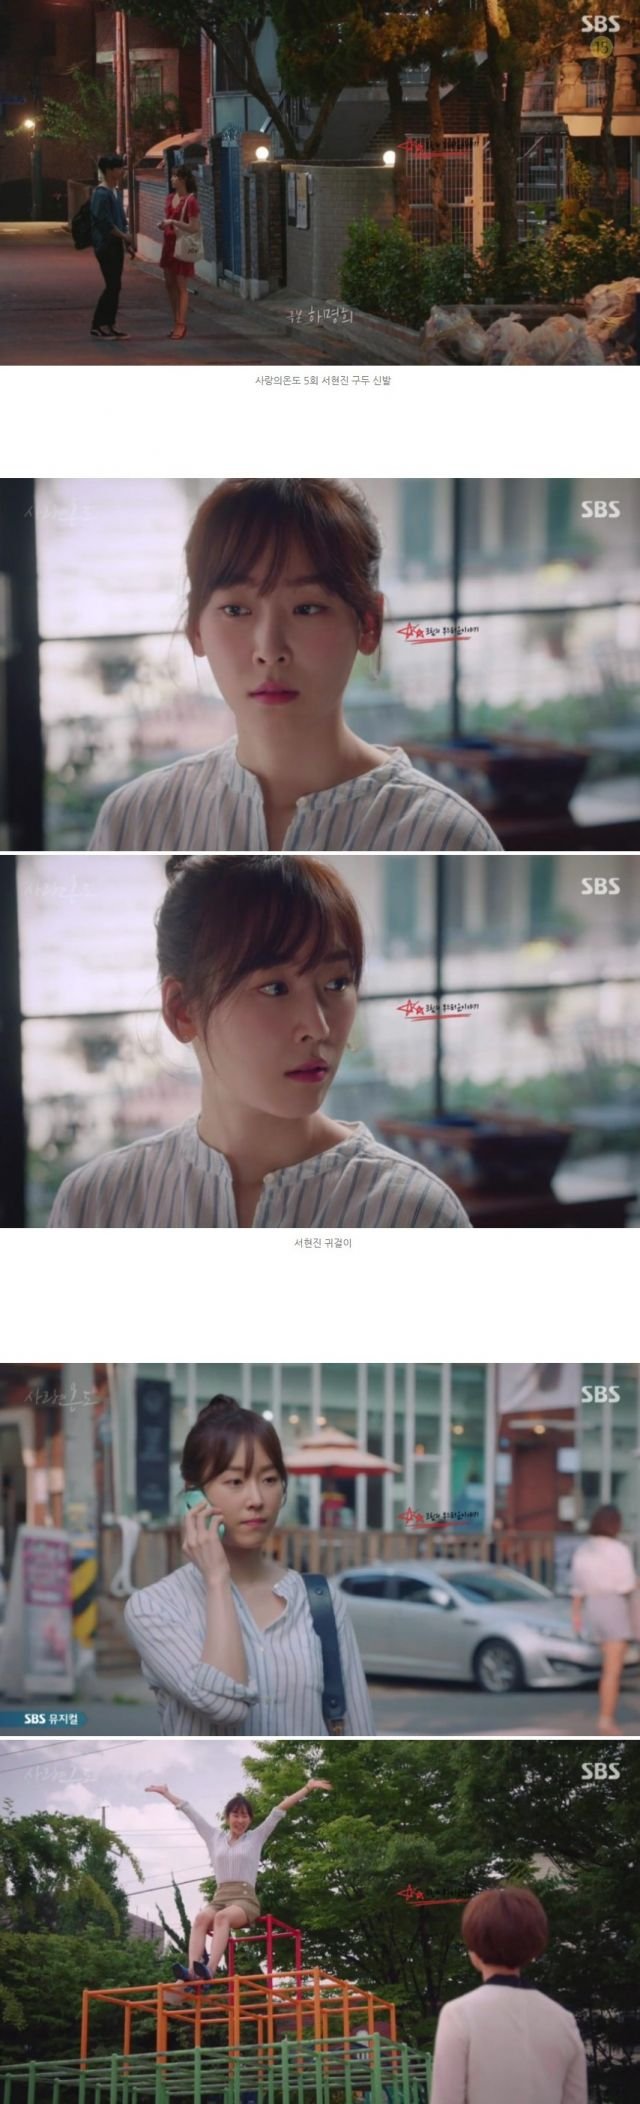 [Spoiler] Added episodes 5 and 6 captures for the Korean drama 'The Temperature of Love'